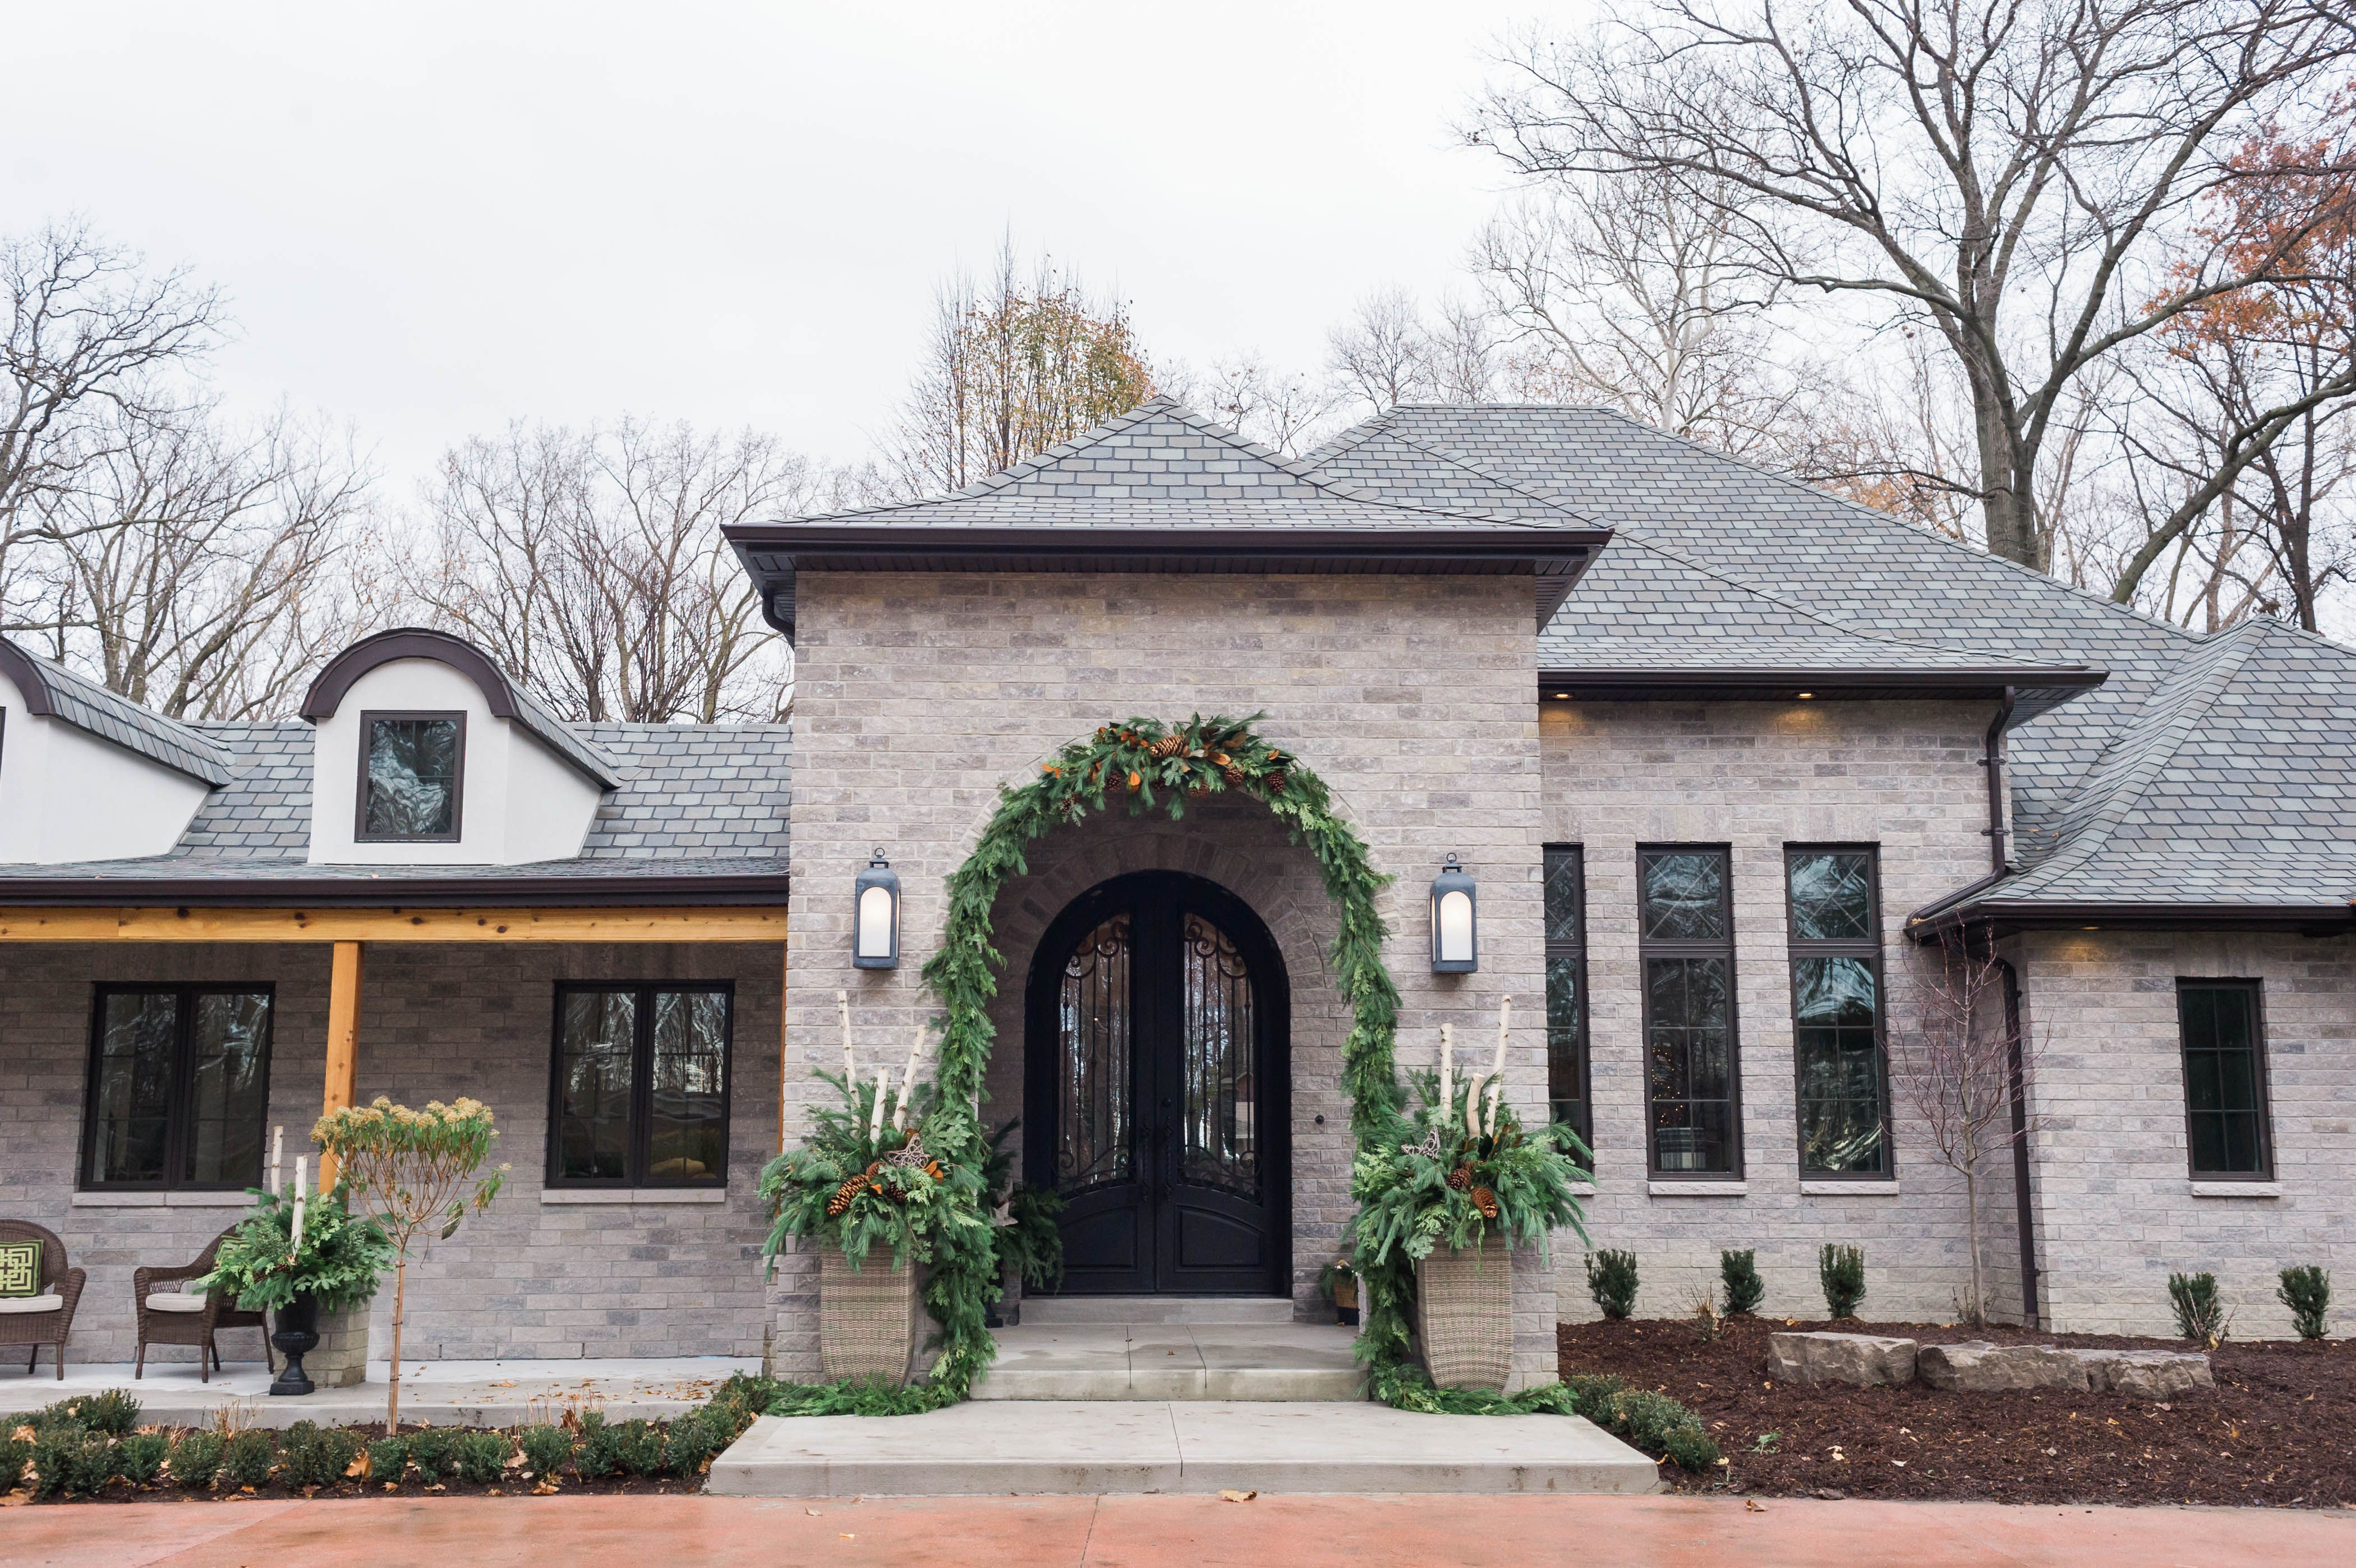 Modern French Country Exterior Renovation Part 2 The Leslie Style French Country Exterior Brick Exterior House Shutters Exterior